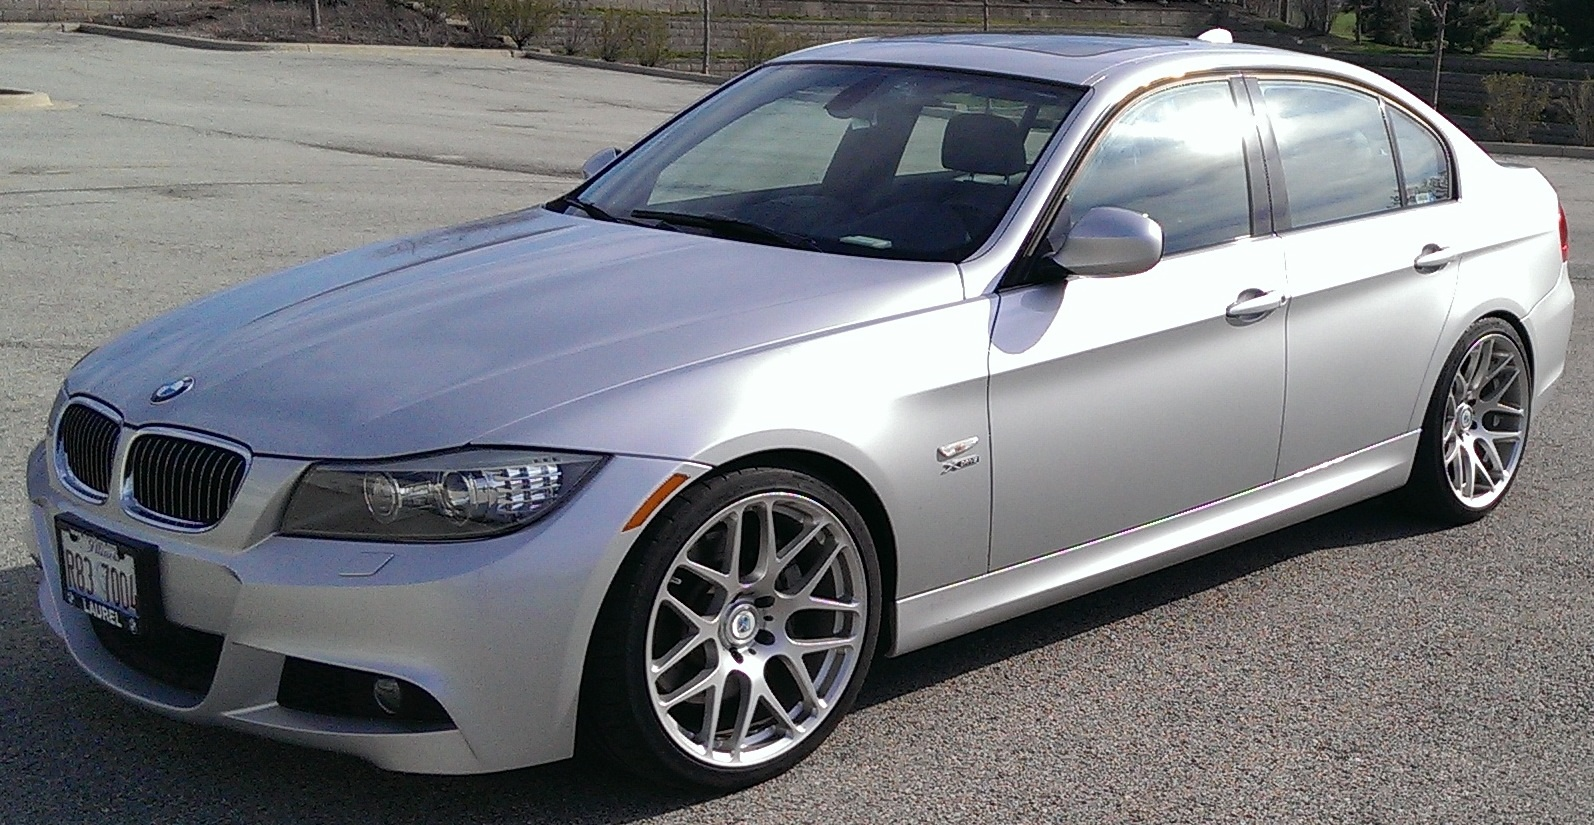 WTT E BMW Xi M Sport Mt CPO For E M - 2010 bmw 335xi